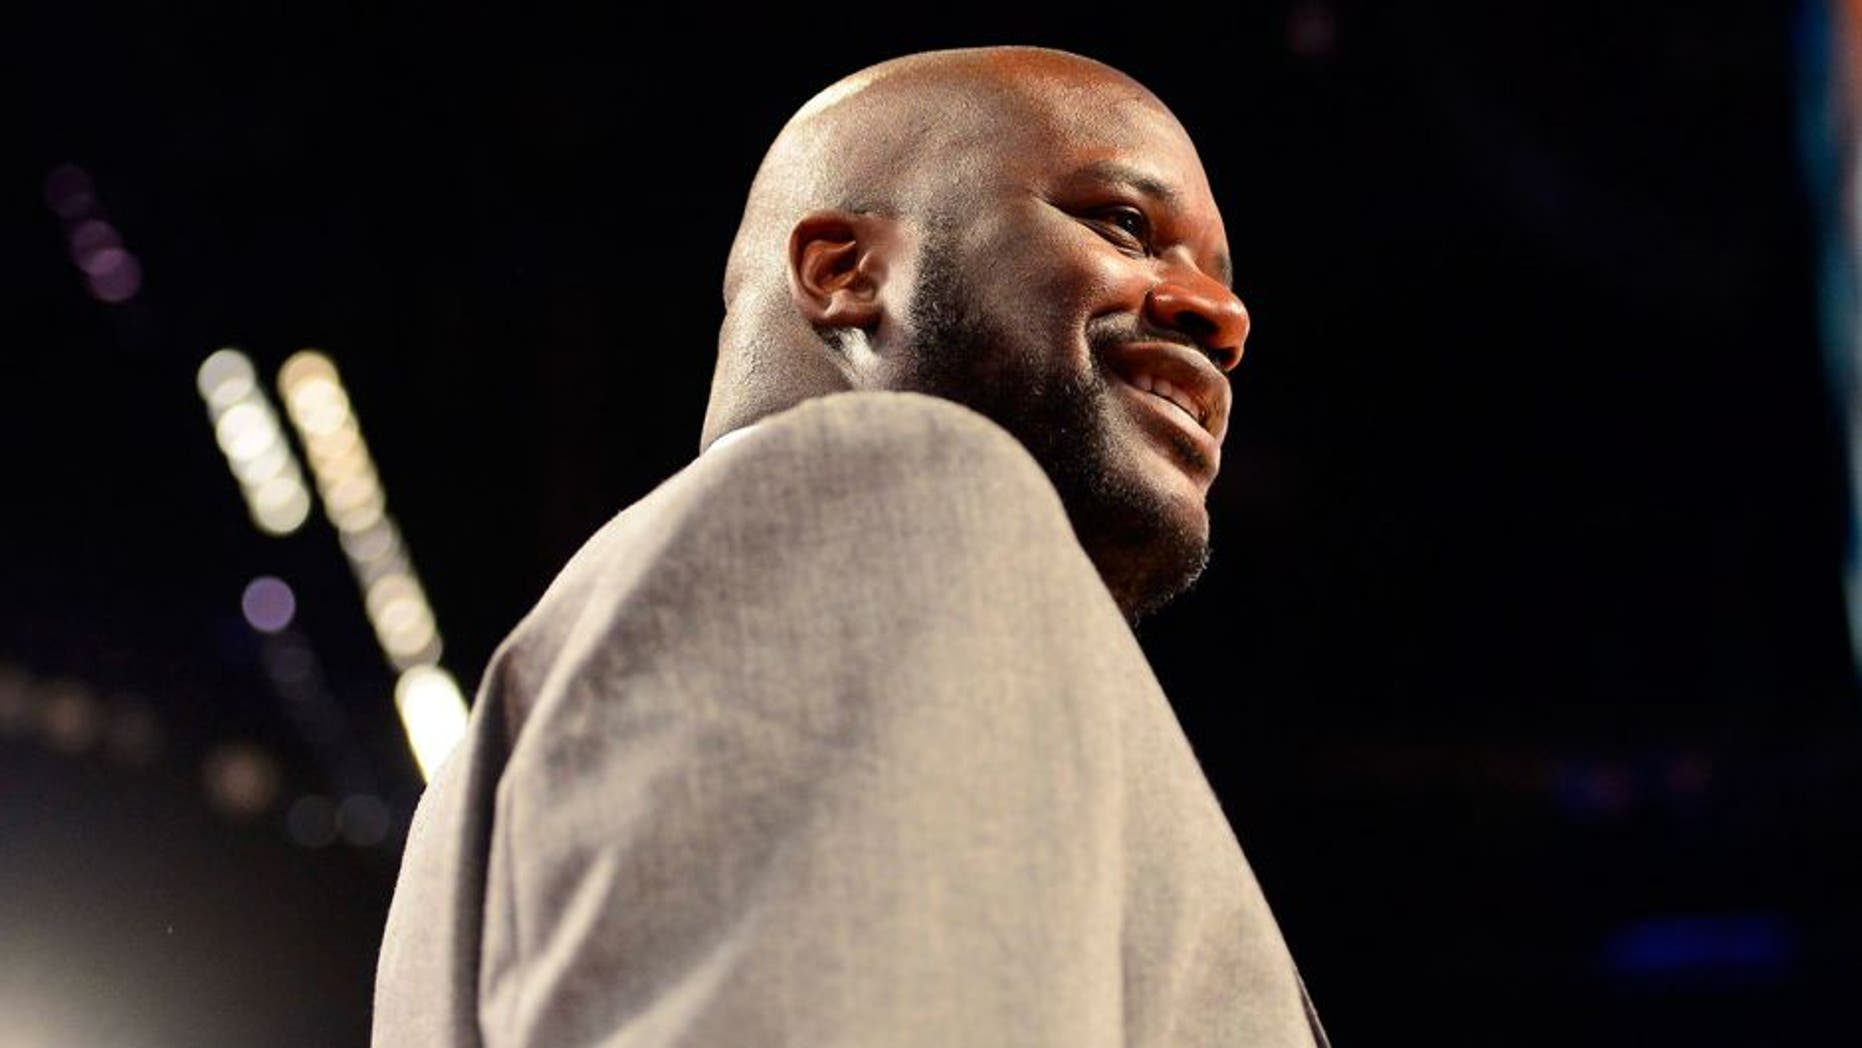 Feb 14, 2014; New Orleans, LA, USA; NBA former player Shaquille O'Neal before the 2014 Rising Stars Challenge at Smoothie King Center. Mandatory Credit: Bob Donnan-USA TODAY Sports